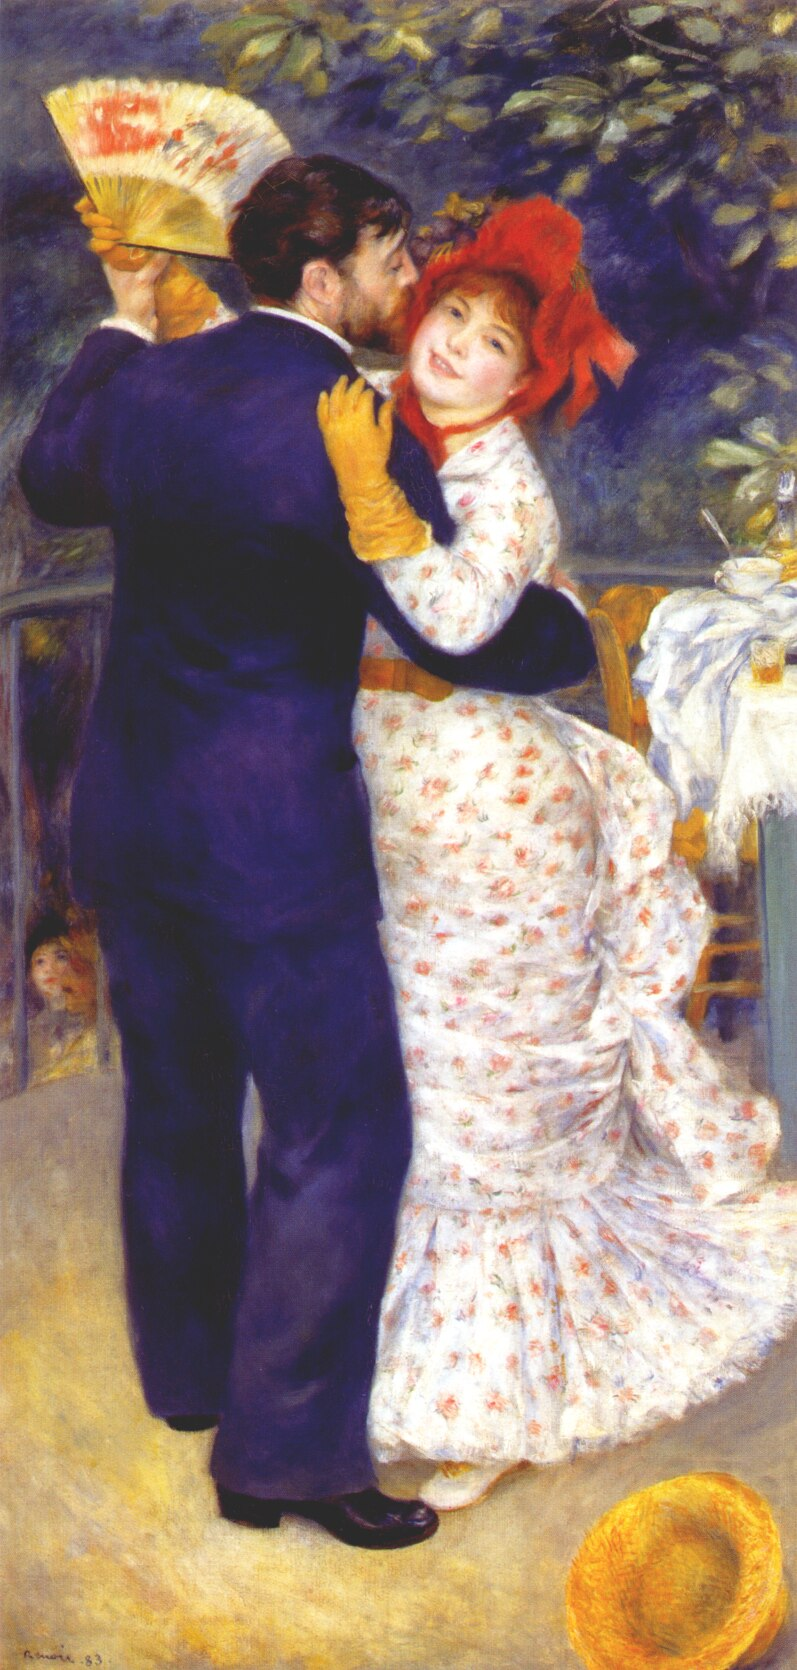 https://uploads1.wikiart.org/images/pierre-auguste-renoir/dance-in-the-country-1883-1.jpg